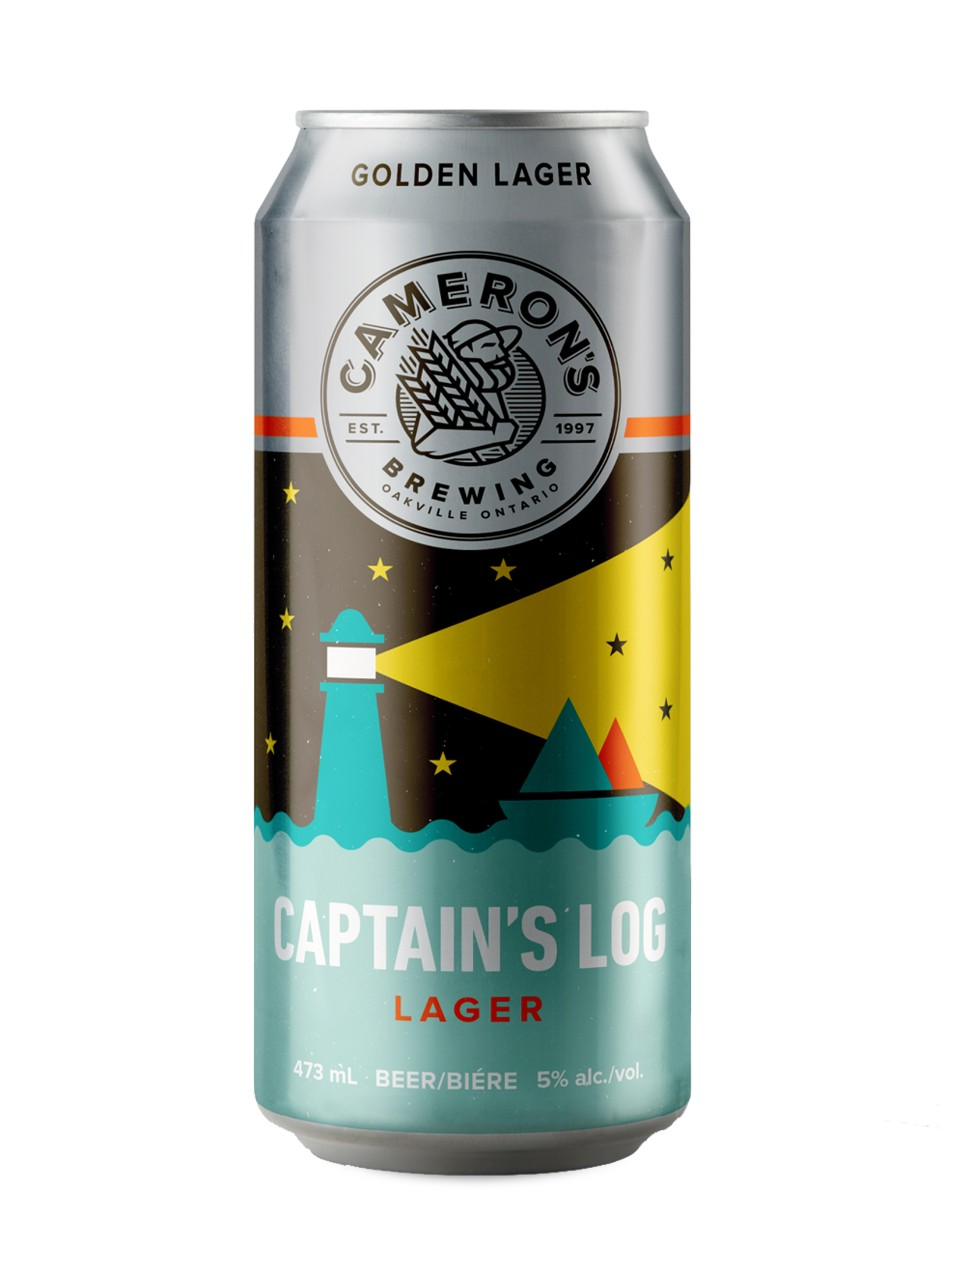 Cameron's Captain's Log Lager from LCBO